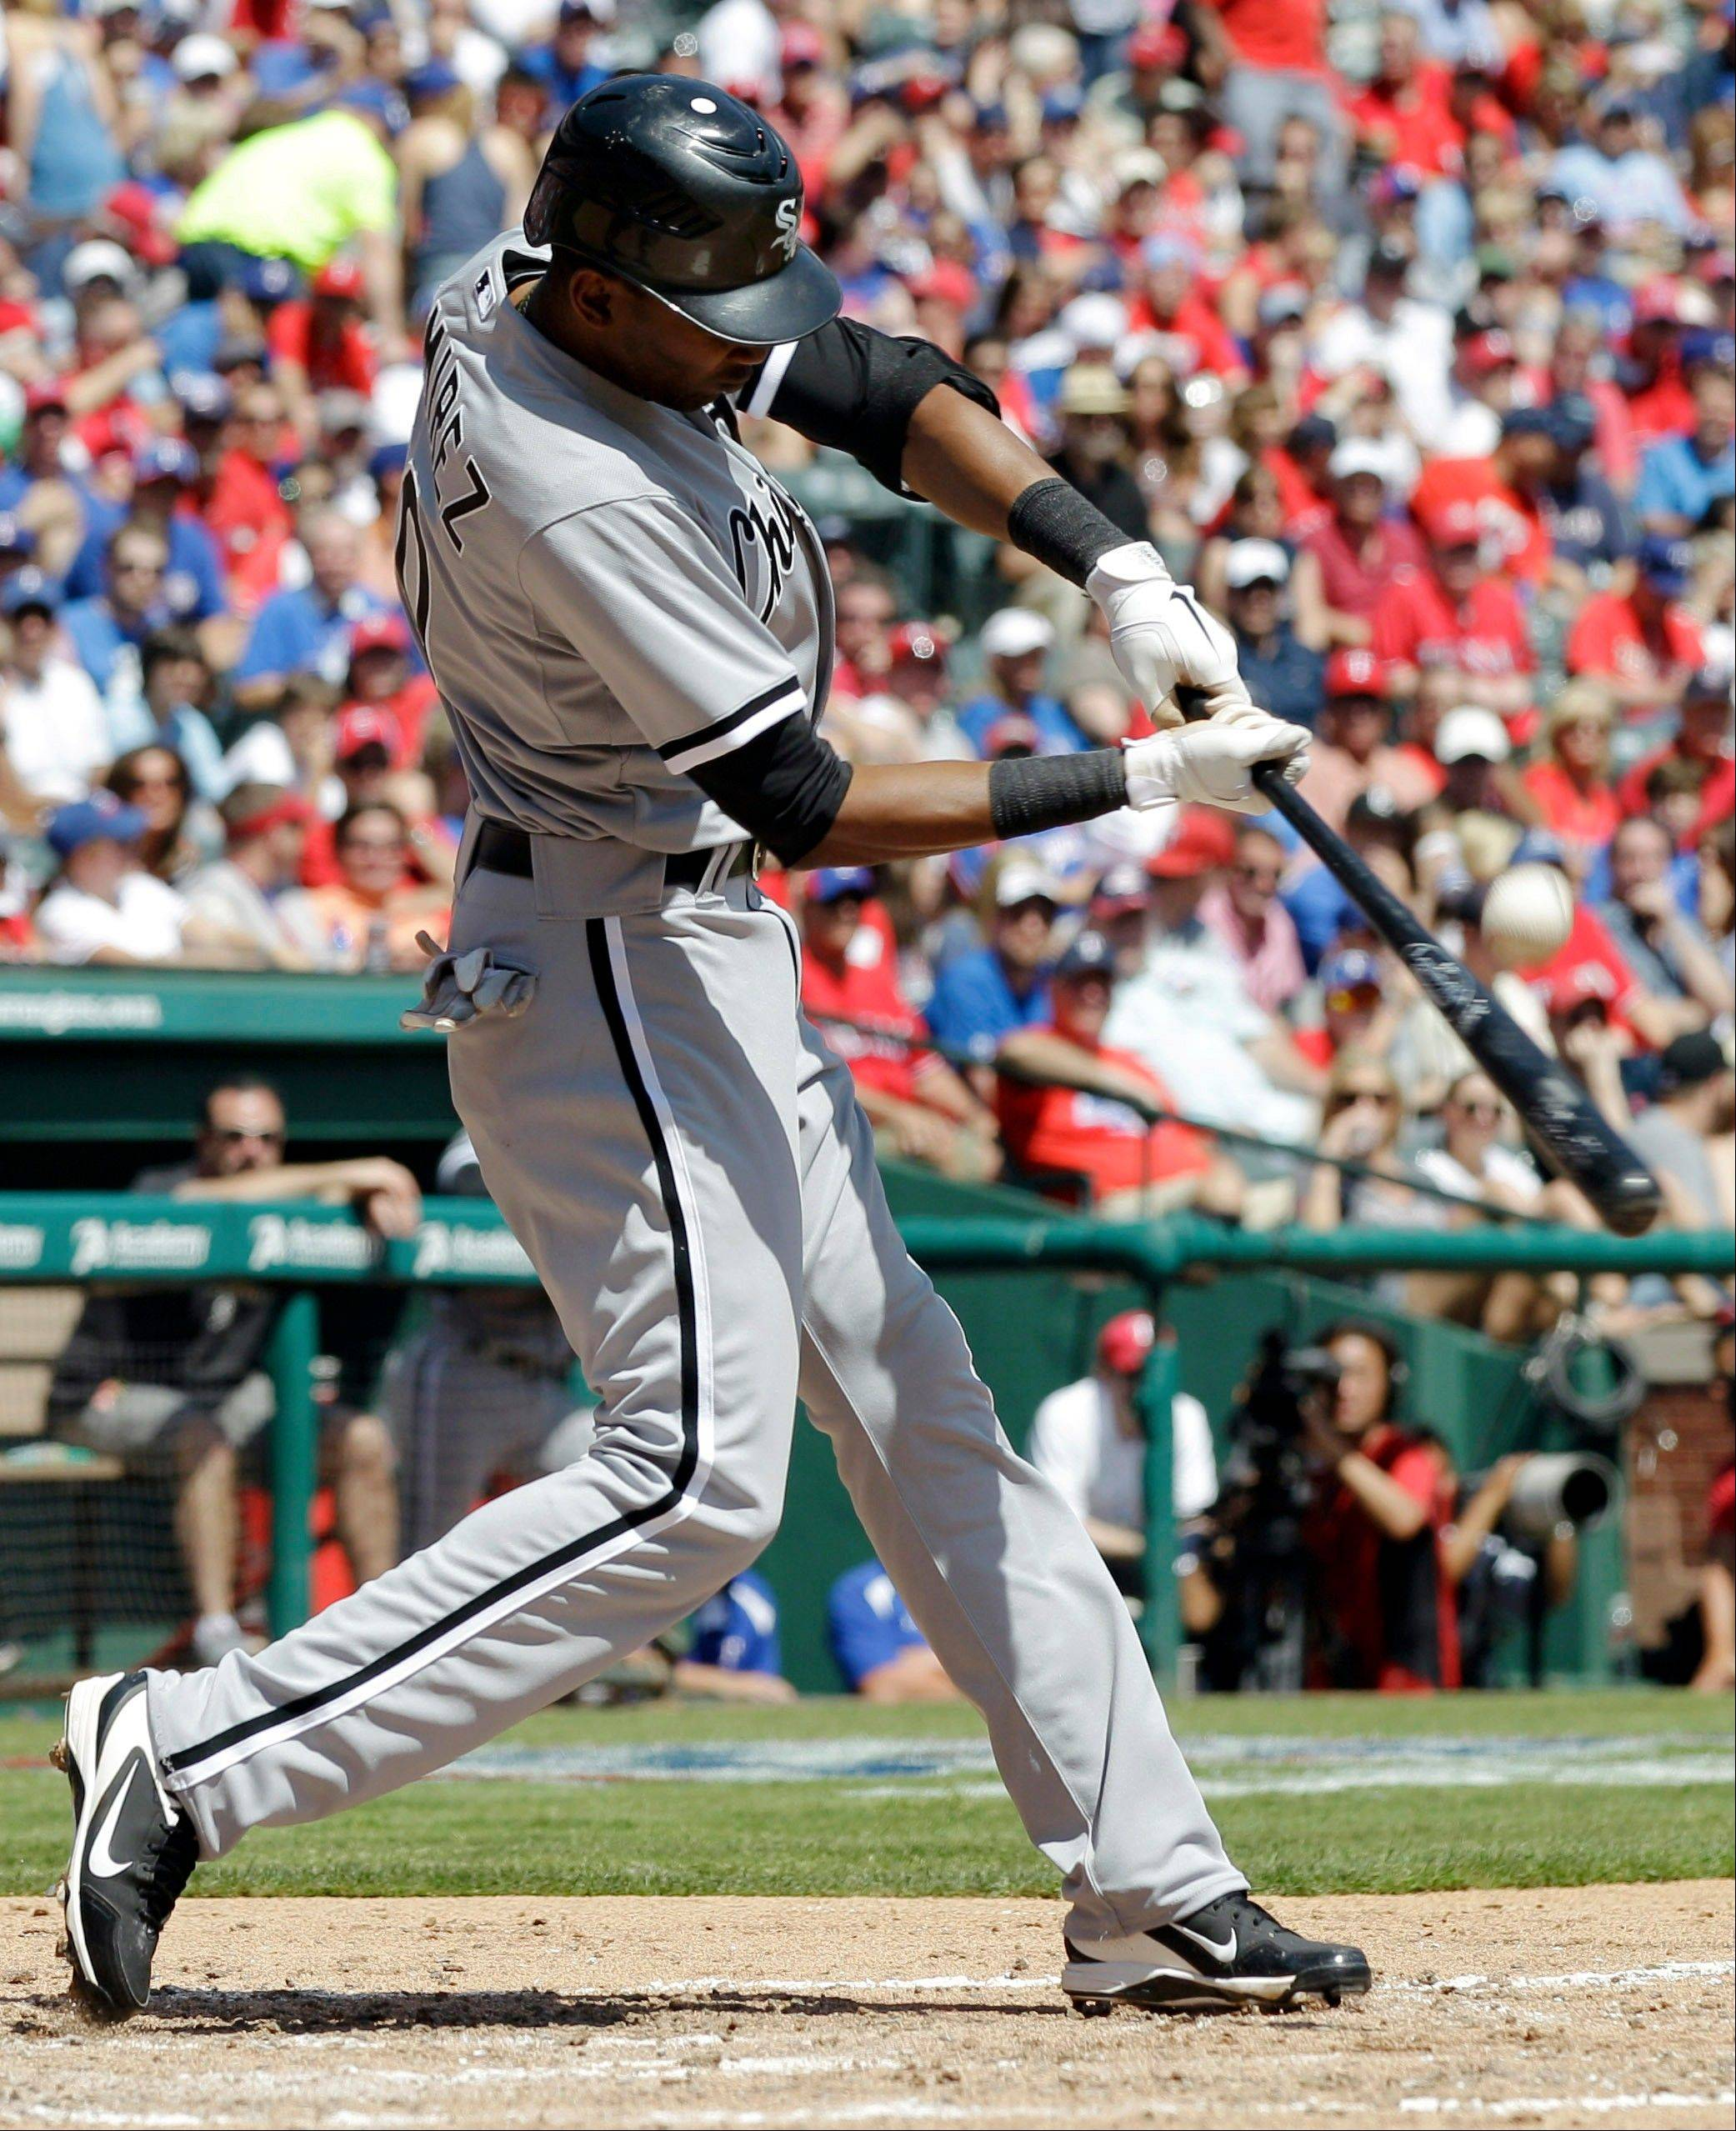 Chicago White Sox's Alexei Ramirez hits an RBI single against the Texas Rangers during the sixth inning of a baseball game, Friday, April 6, 2012, in Arlington, Texas.